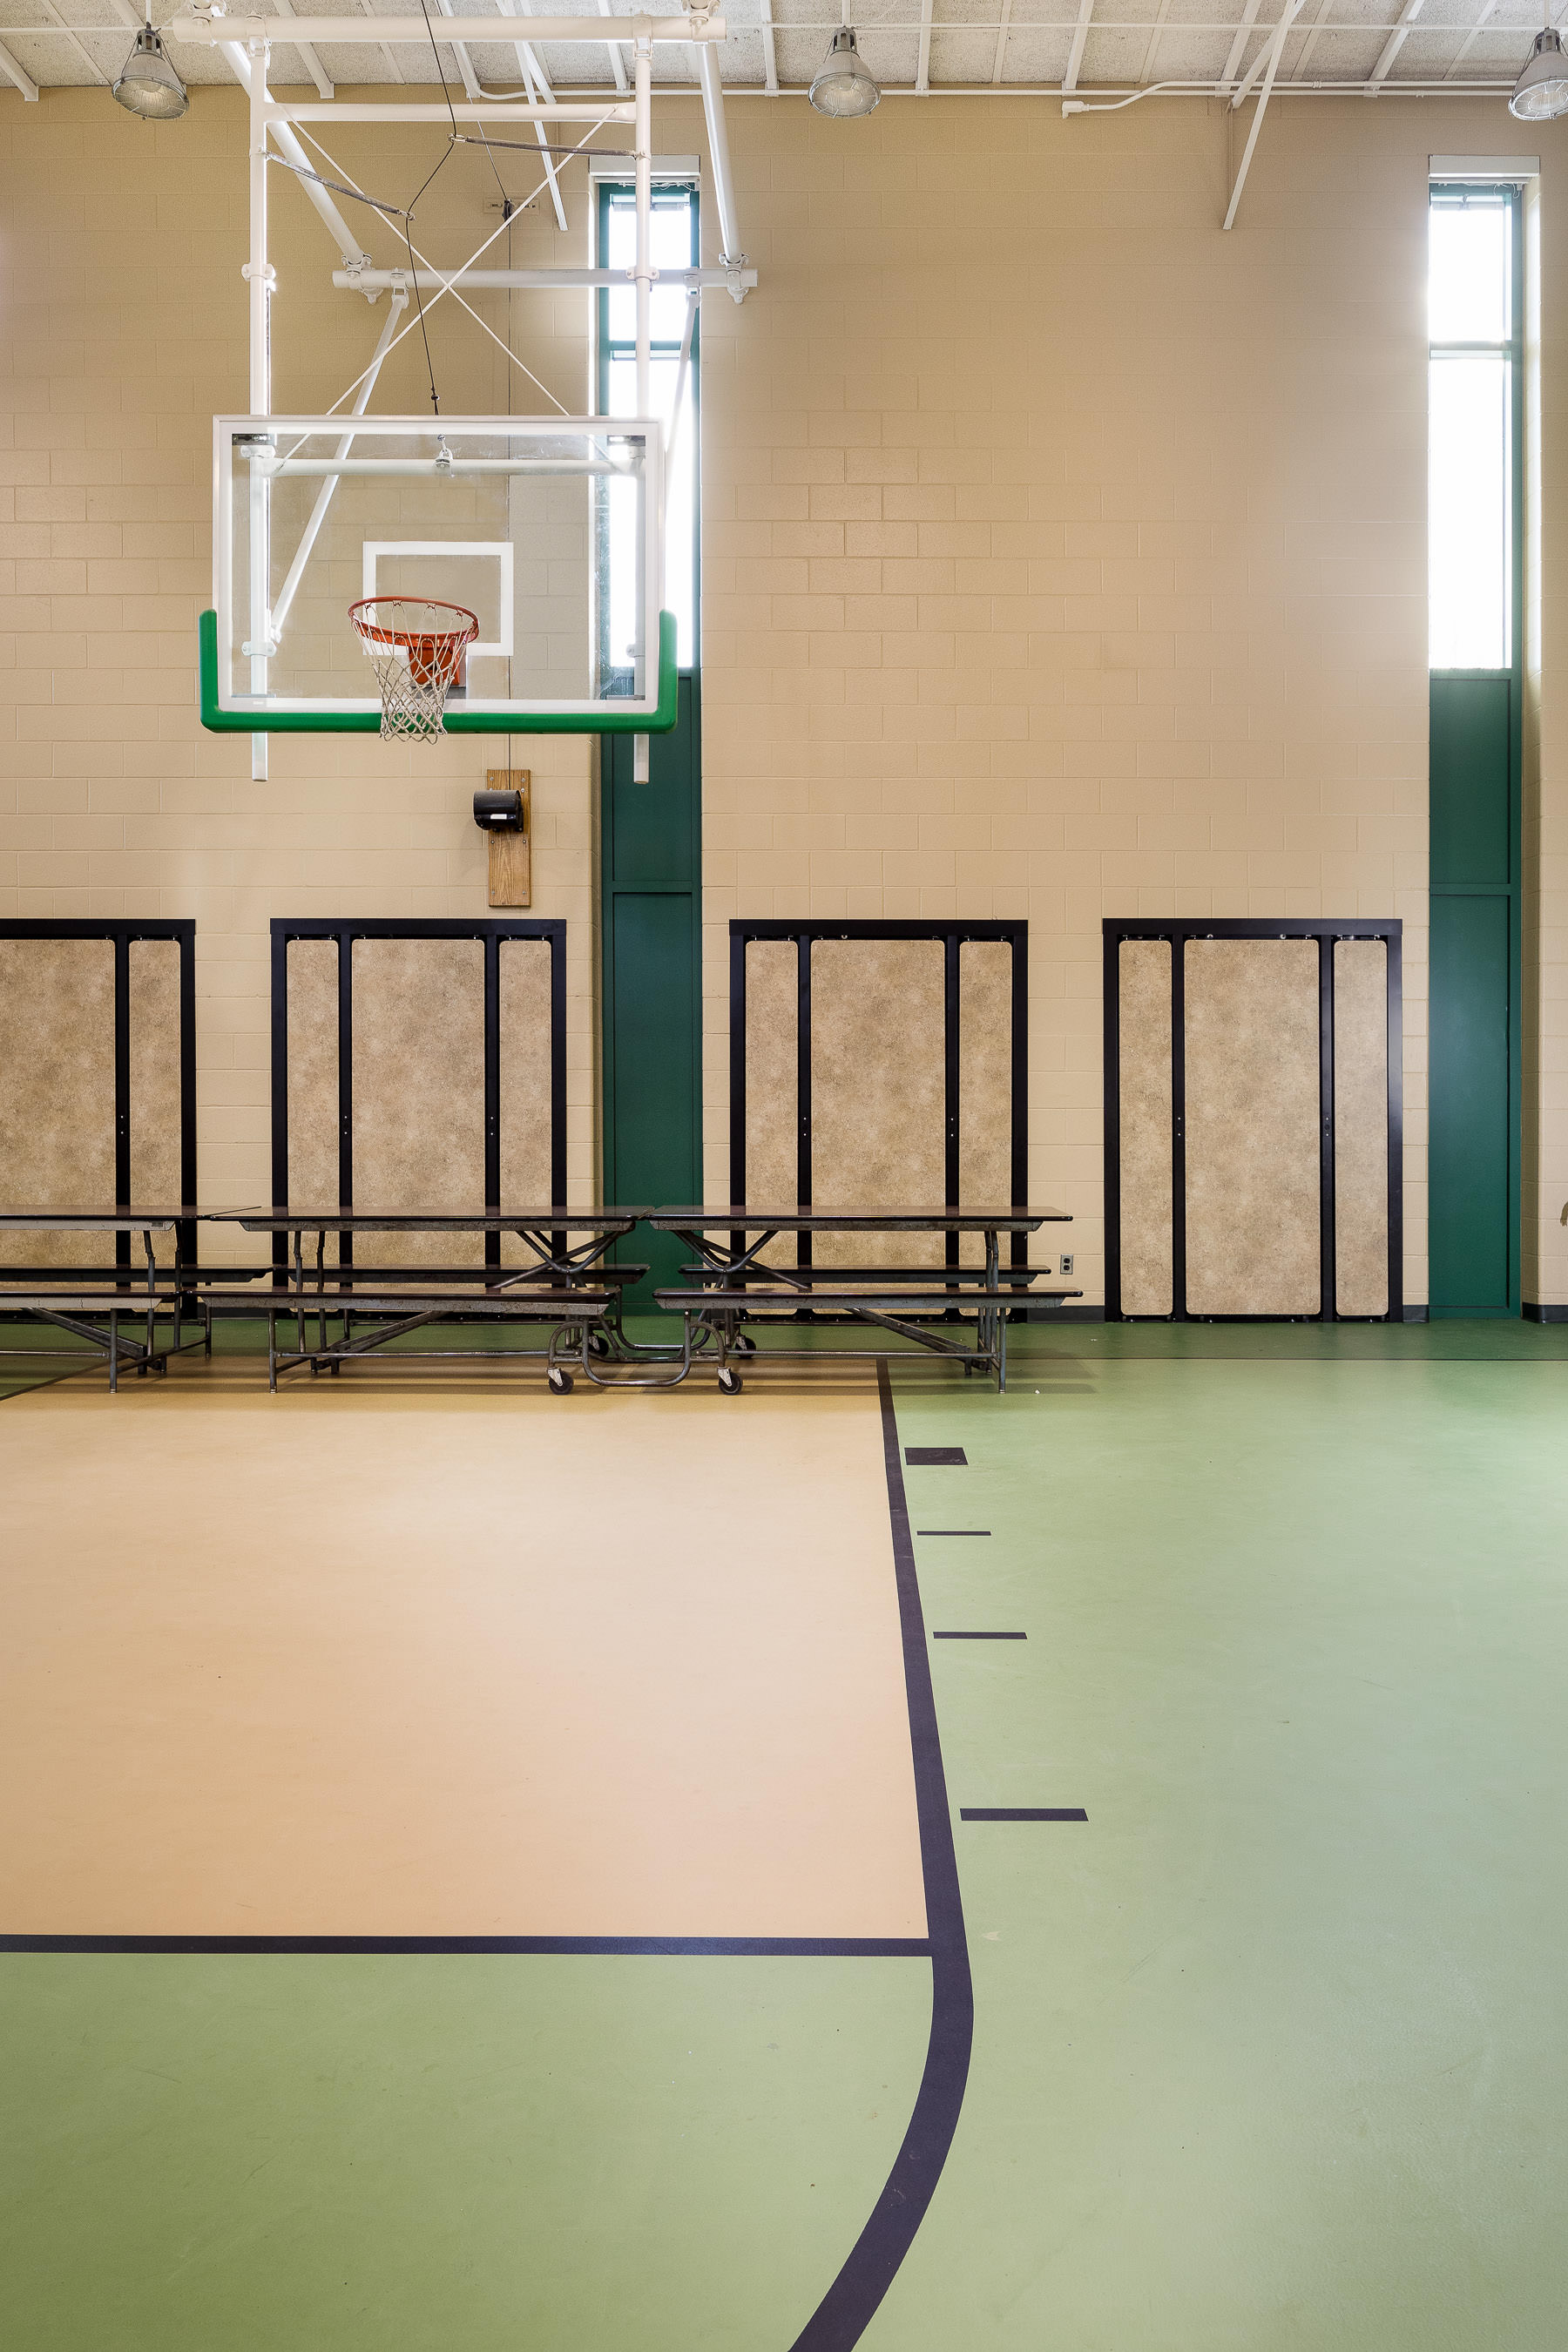 A photo of the renovated gymnasium at Berlin Elementary school photographed by Vermont professional photographer Stina Booth